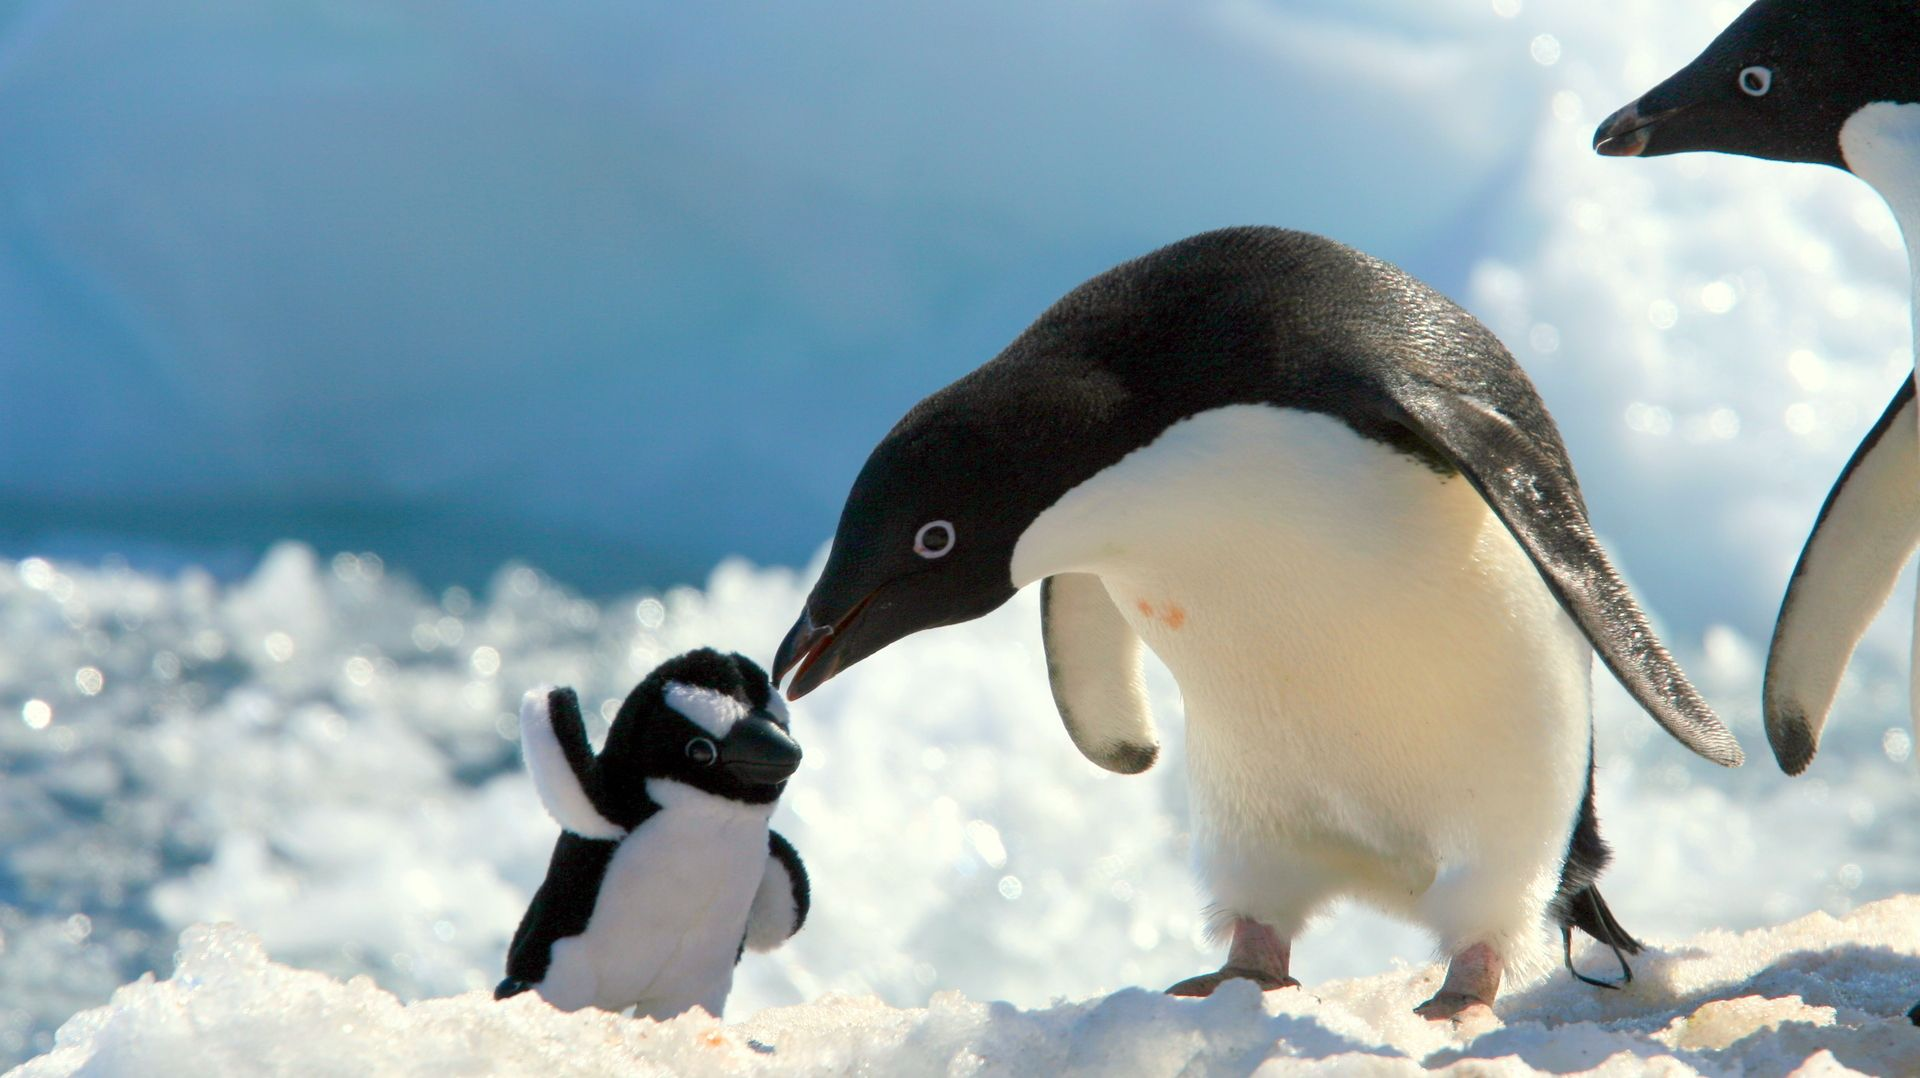 cute penguin wallpaper high quality #2tgj10 1920x1078 px 898.49 kb